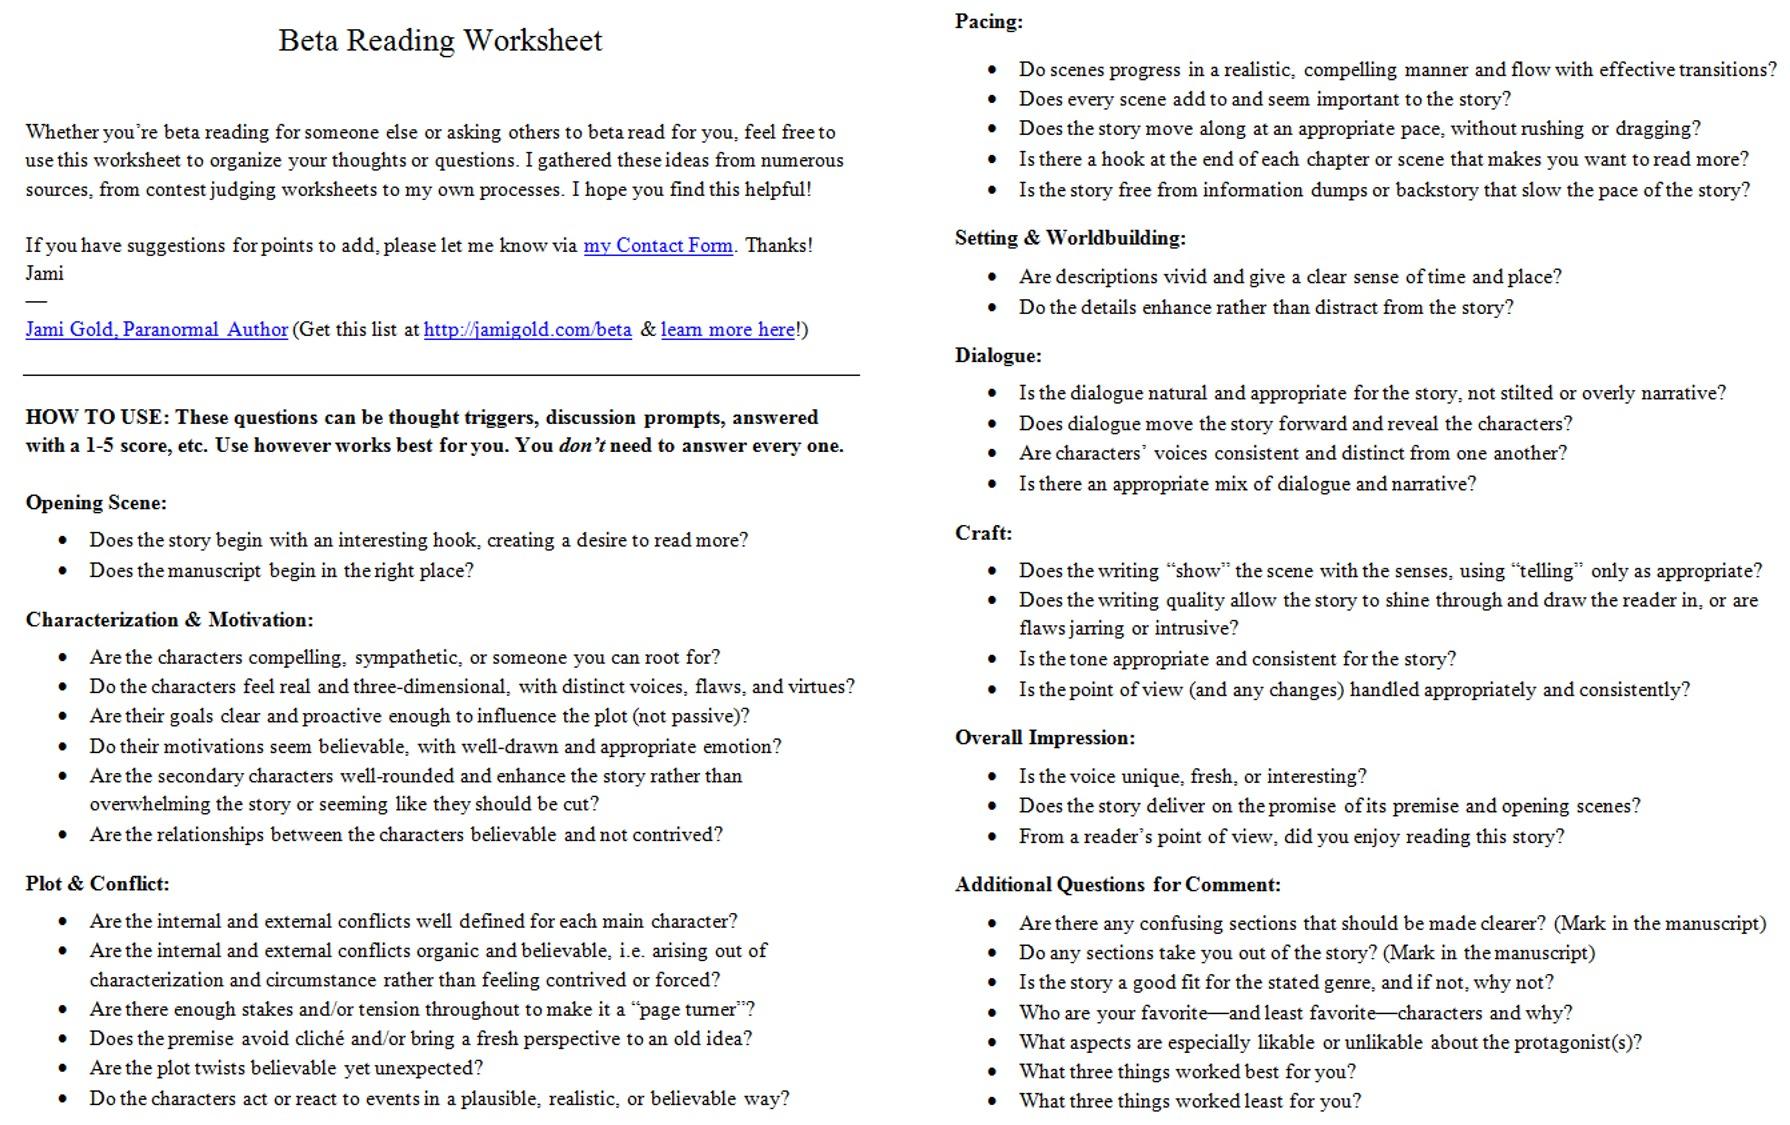 Aldiablosus  Pretty Worksheets For Writers  Jami Gold Paranormal Author With Excellent Screen Shot Of The Twopage Beta Reading Worksheet With Awesome Power Of A Power Worksheet Also Multiplication Table Worksheet Pdf In Addition Social Security Taxable Income Worksheet And Possessive Pronouns Spanish Worksheet As Well As Weight On Other Planets Worksheet Additionally Owl Pellets Worksheets From Jamigoldcom With Aldiablosus  Excellent Worksheets For Writers  Jami Gold Paranormal Author With Awesome Screen Shot Of The Twopage Beta Reading Worksheet And Pretty Power Of A Power Worksheet Also Multiplication Table Worksheet Pdf In Addition Social Security Taxable Income Worksheet From Jamigoldcom